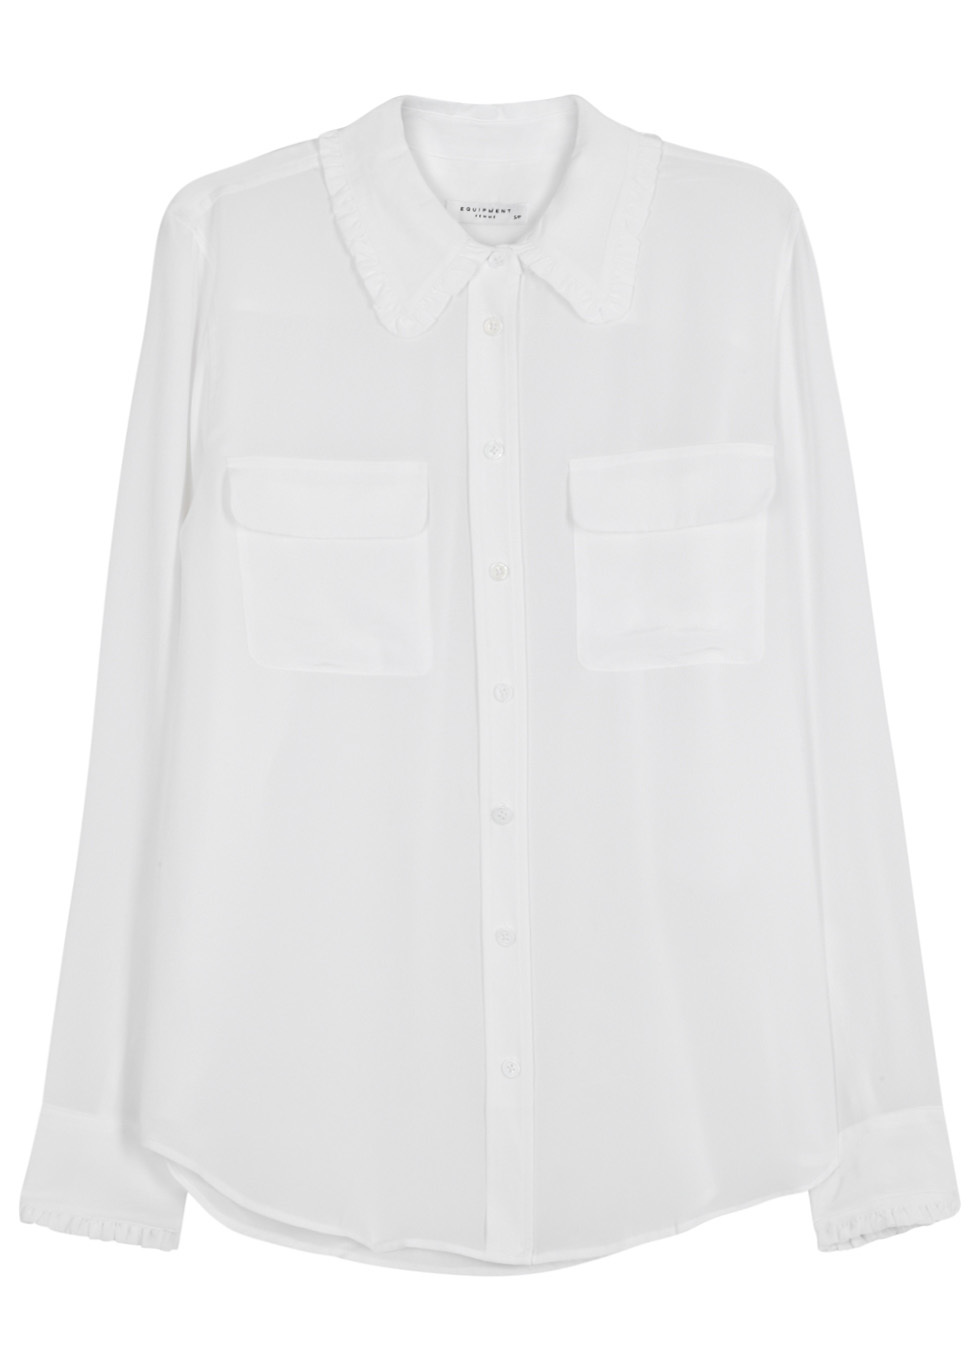 Slim Signature White Washed Silk Shirt - neckline: shirt collar/peter pan/zip with opening; pattern: plain; style: shirt; predominant colour: white; occasions: work; length: standard; fibres: silk - 100%; fit: loose; back detail: longer hem at back than at front; sleeve length: long sleeve; sleeve style: standard; texture group: silky - light; pattern type: fabric; wardrobe: basic; season: a/w 2016